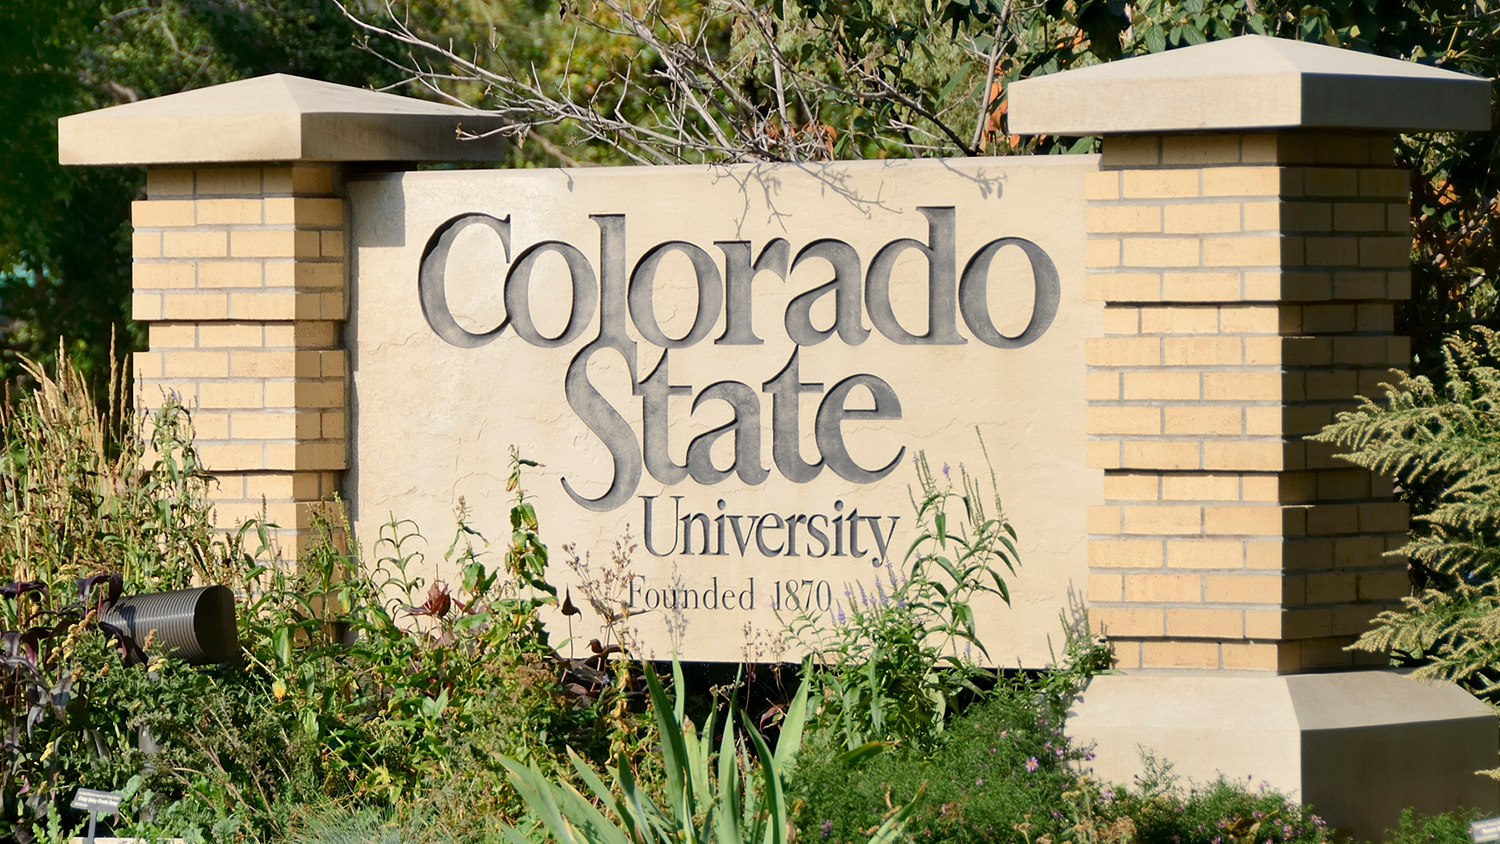 Colorado State University Sign